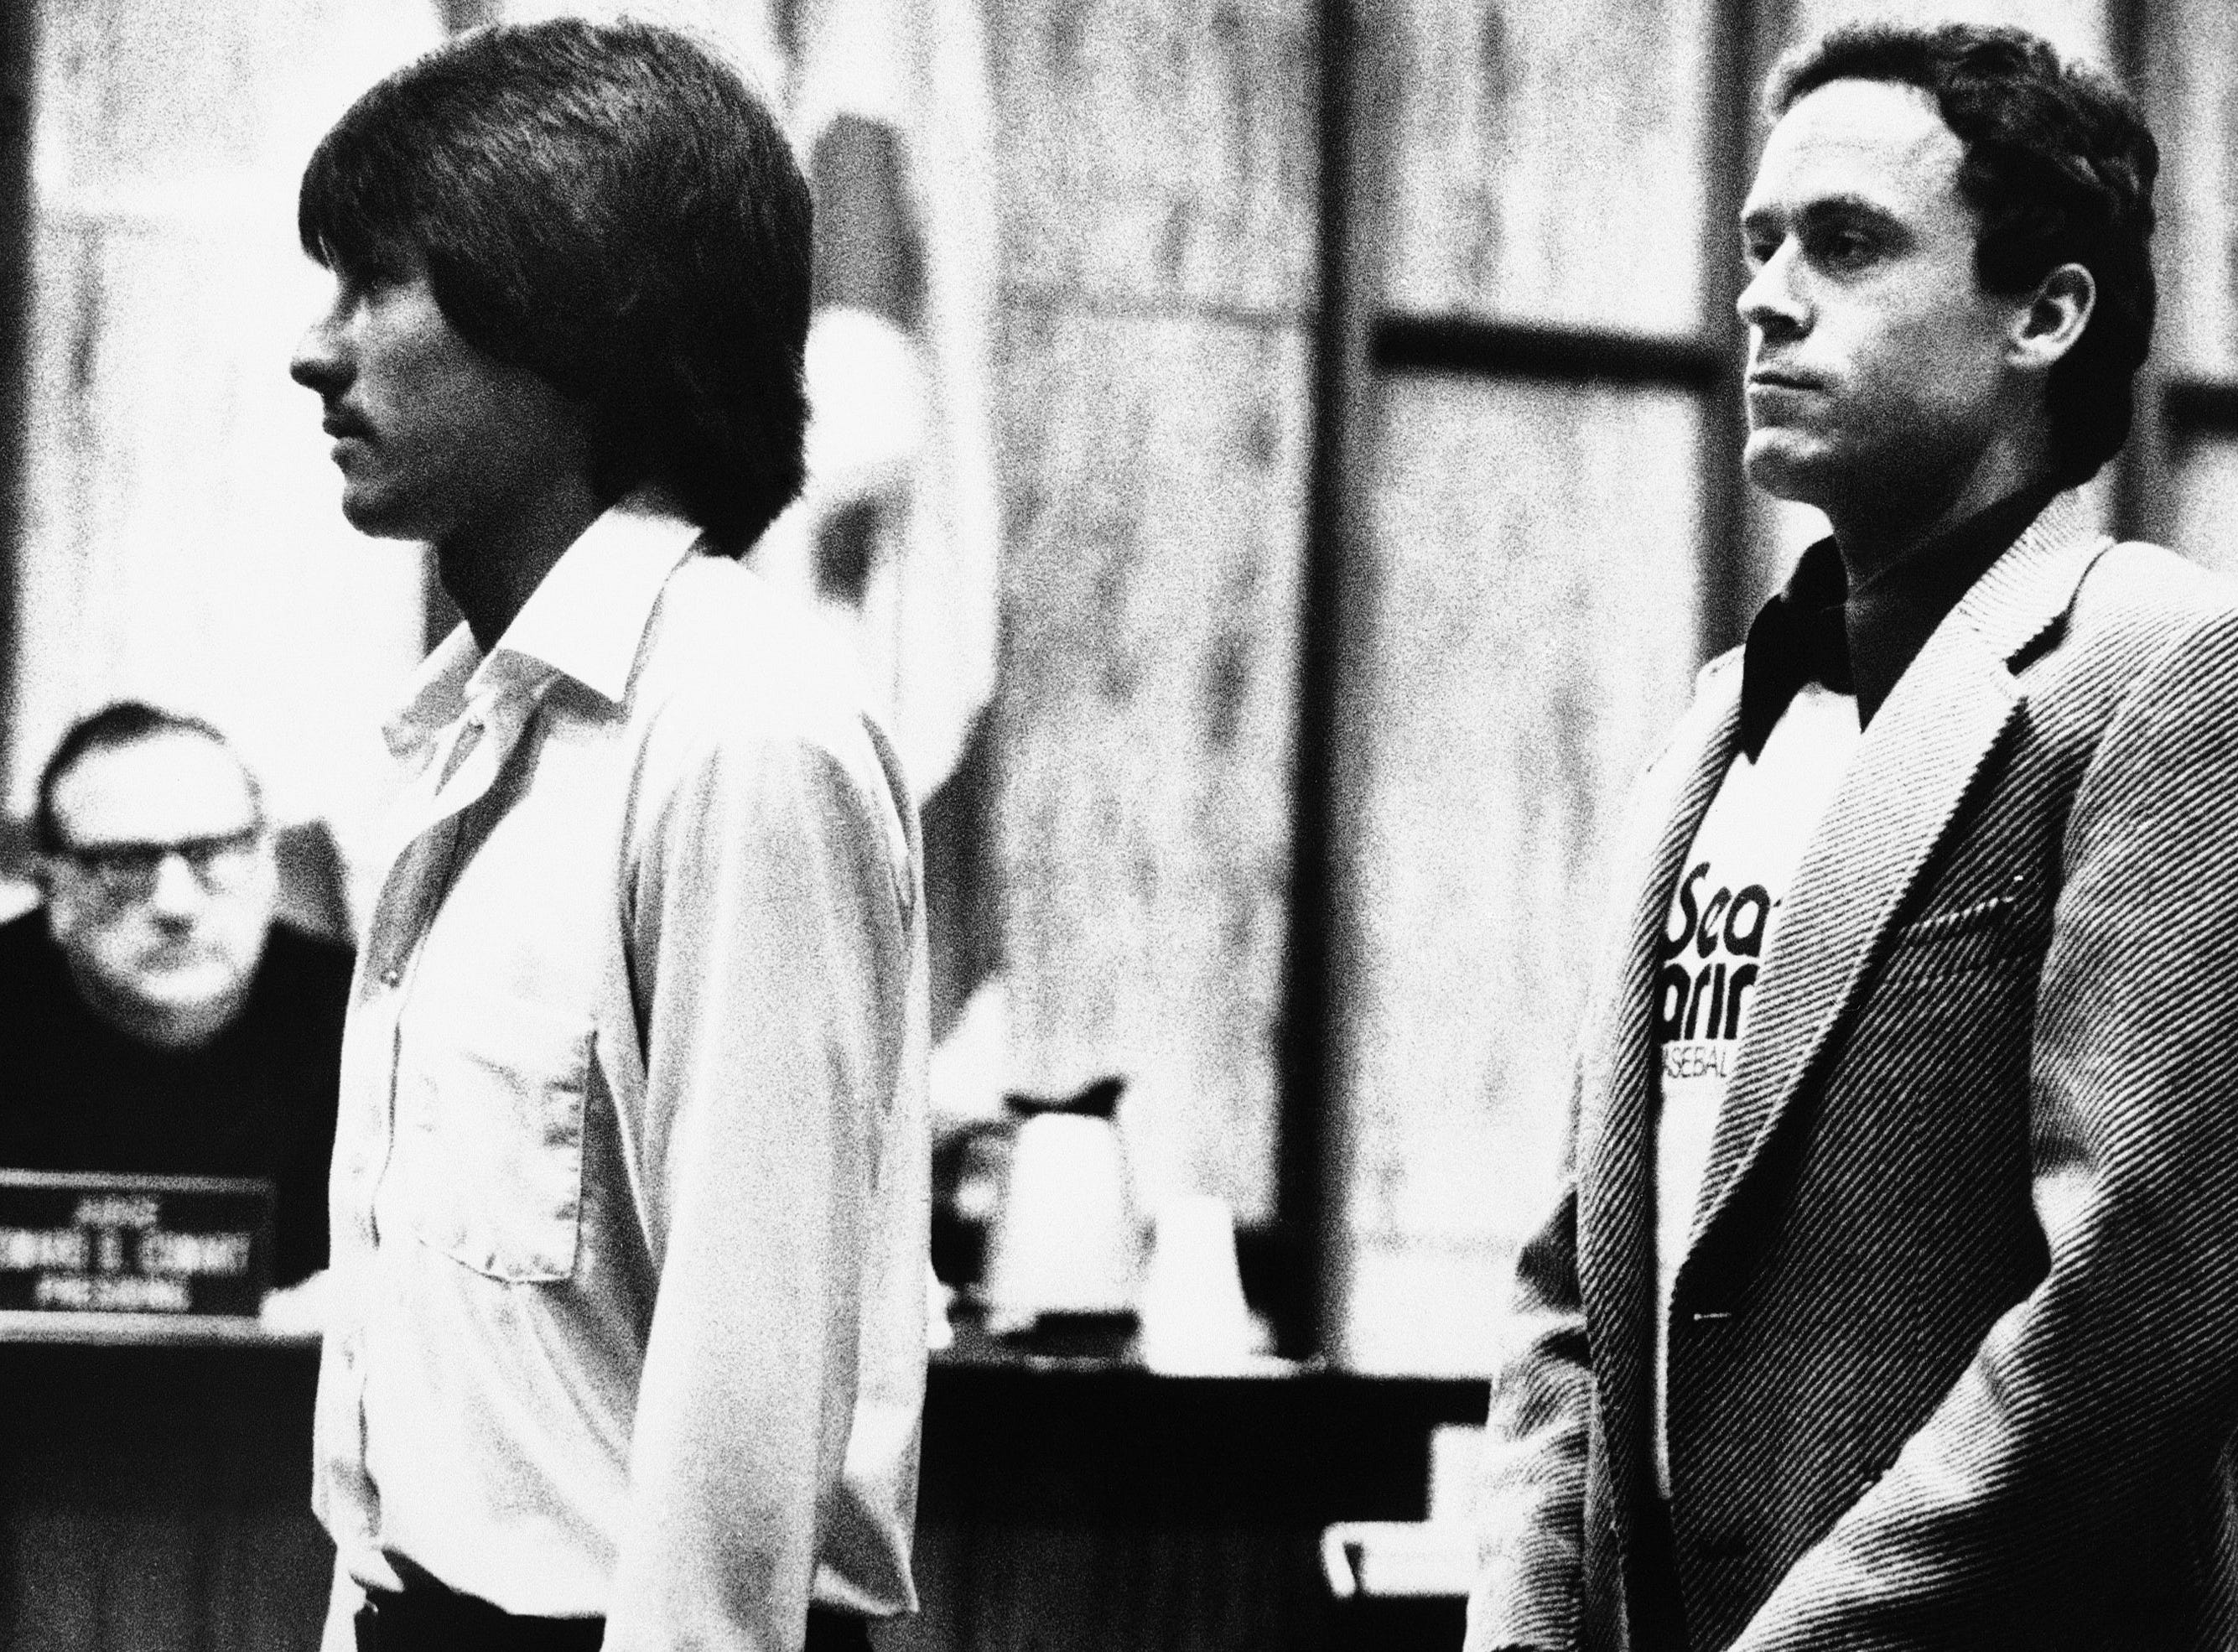 Accused murderer Theodore Bundy, right, and former Chi Omega Sorority houseboy Ronnie Eng, left, stand profile-to-profile for Bundy's defense team and trial Judge Edward Cowart, far left, in the Miami Courtroom where Bundy is on trial for the murders of two Chi Omega sorority sisters, Monday, July 5, 1979, Miami, Fla. Bundy's defense team tried to suggest that someone other than Bundy, possibly Eng, was the man seen leaving the sorority house the night of the murders.